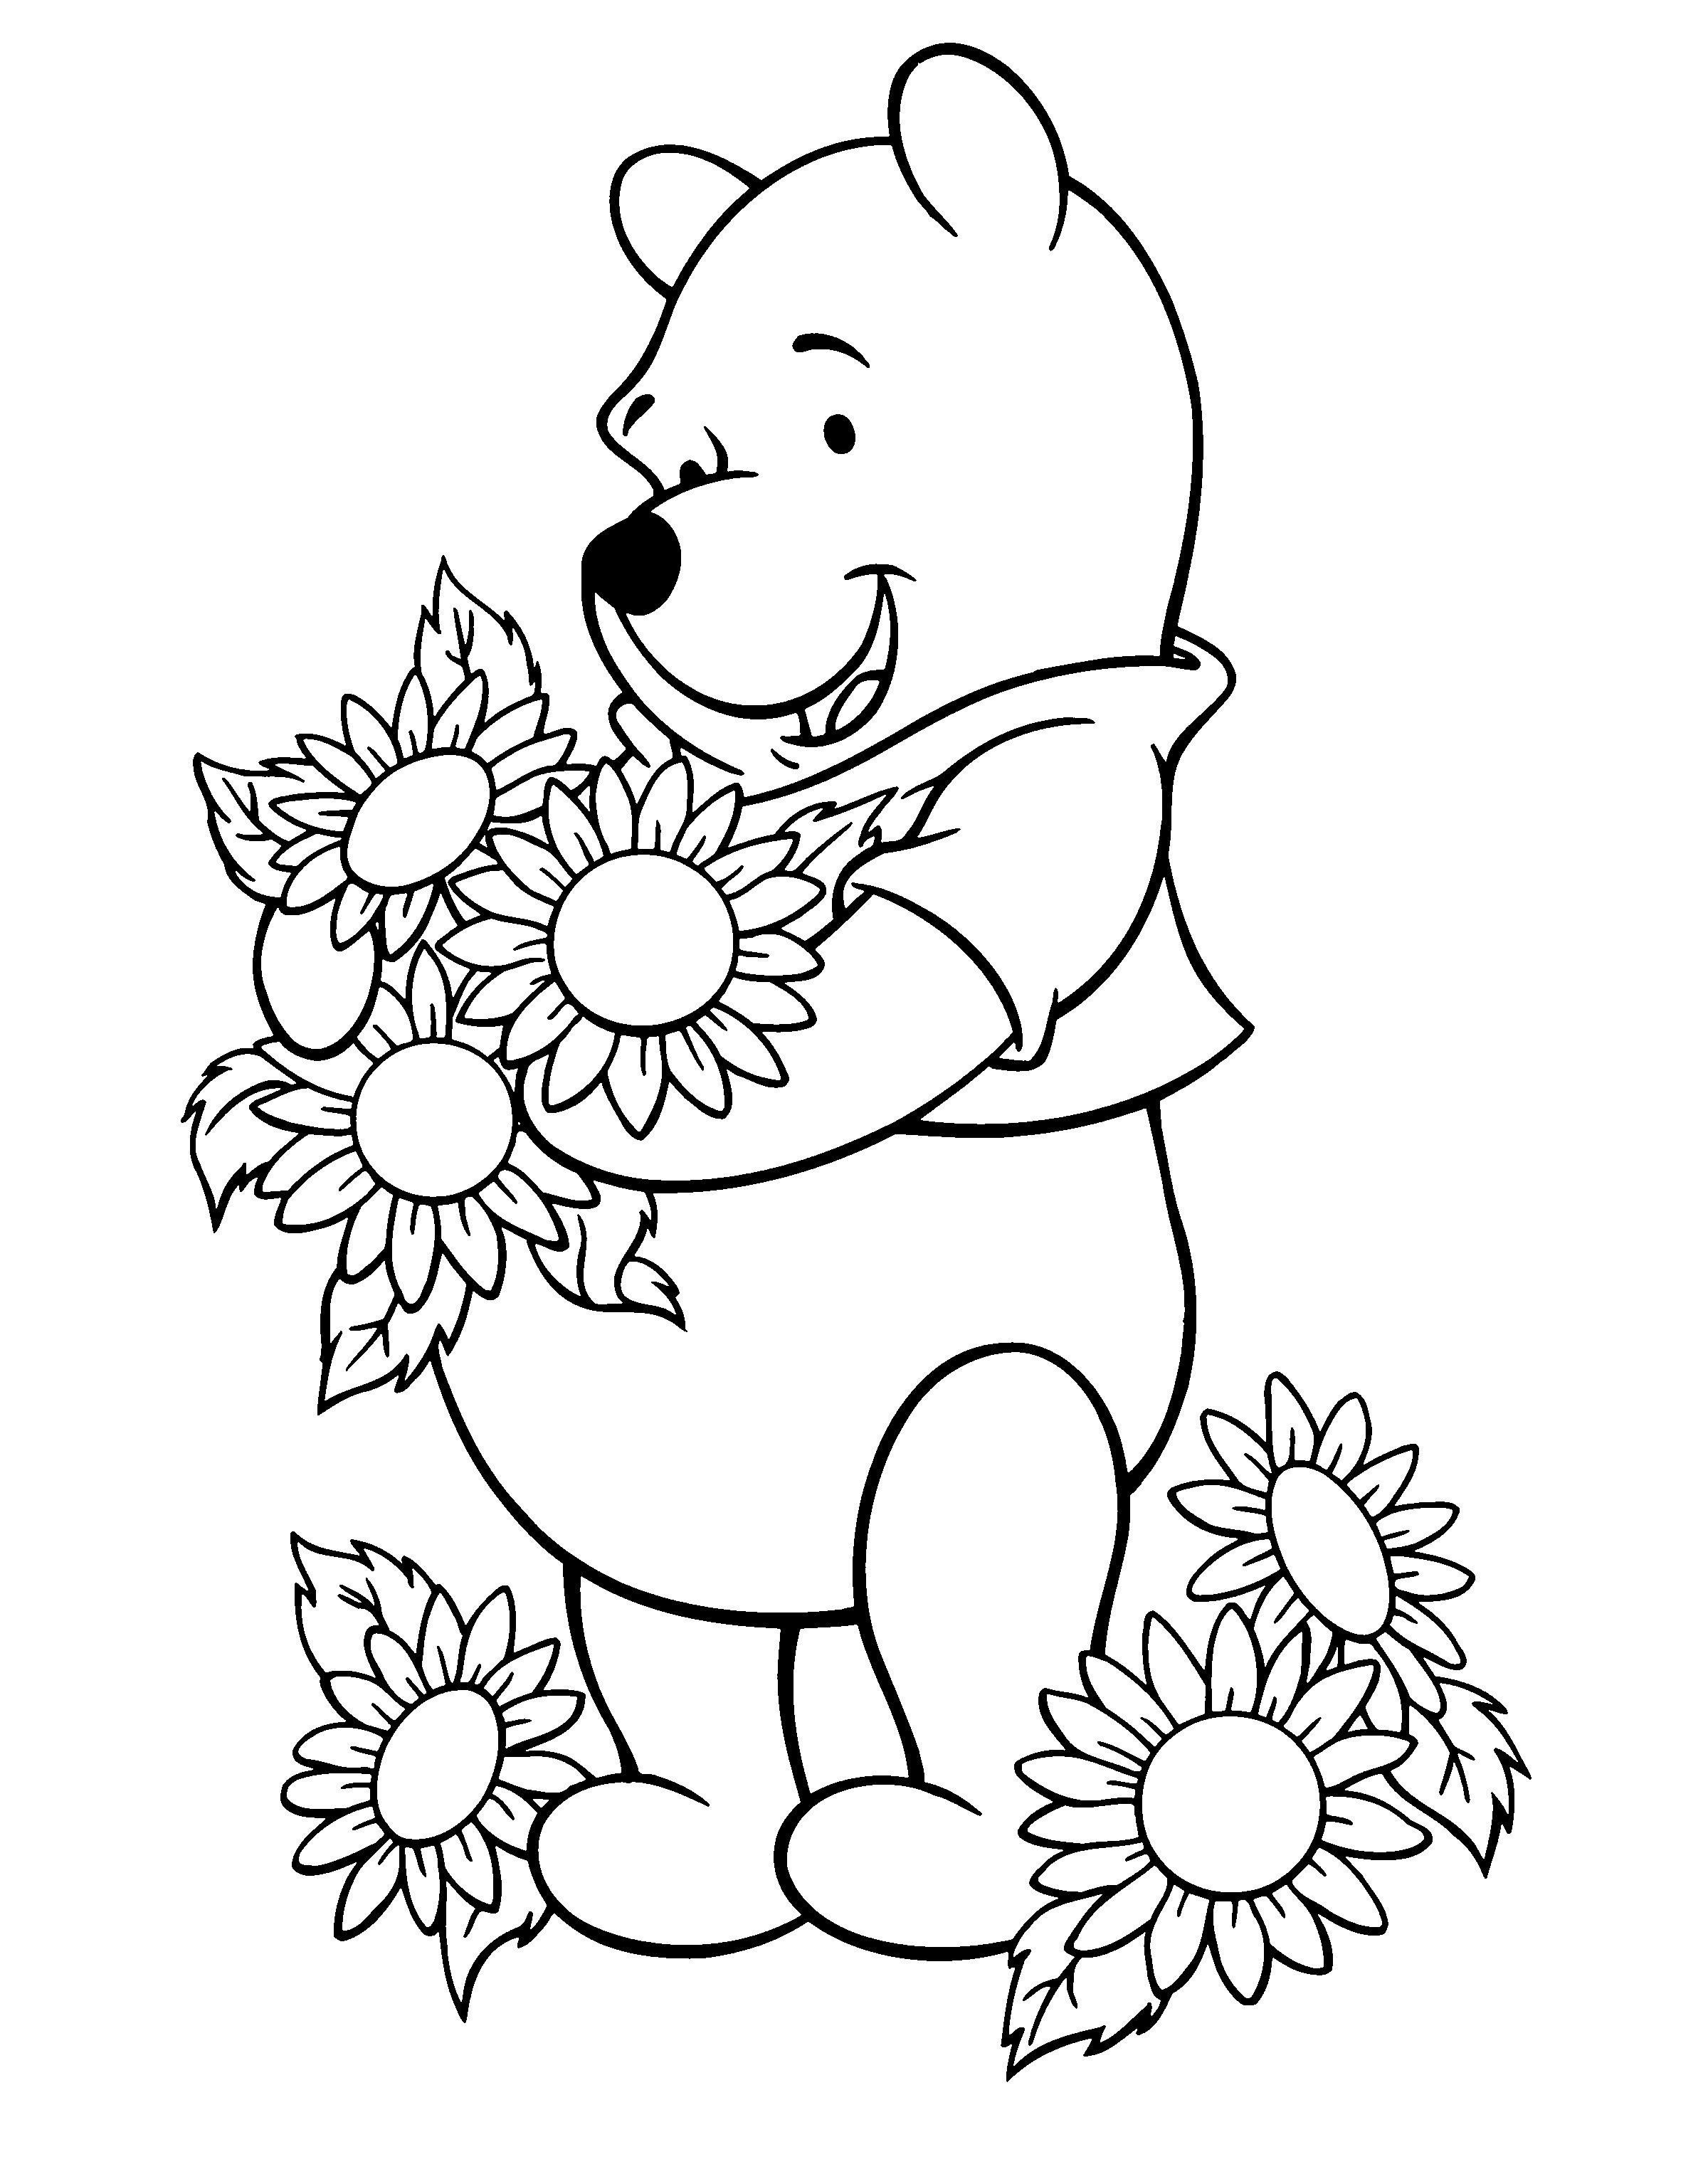 Sunflower coloring pages - Google Search | Adult Coloring Pages ...